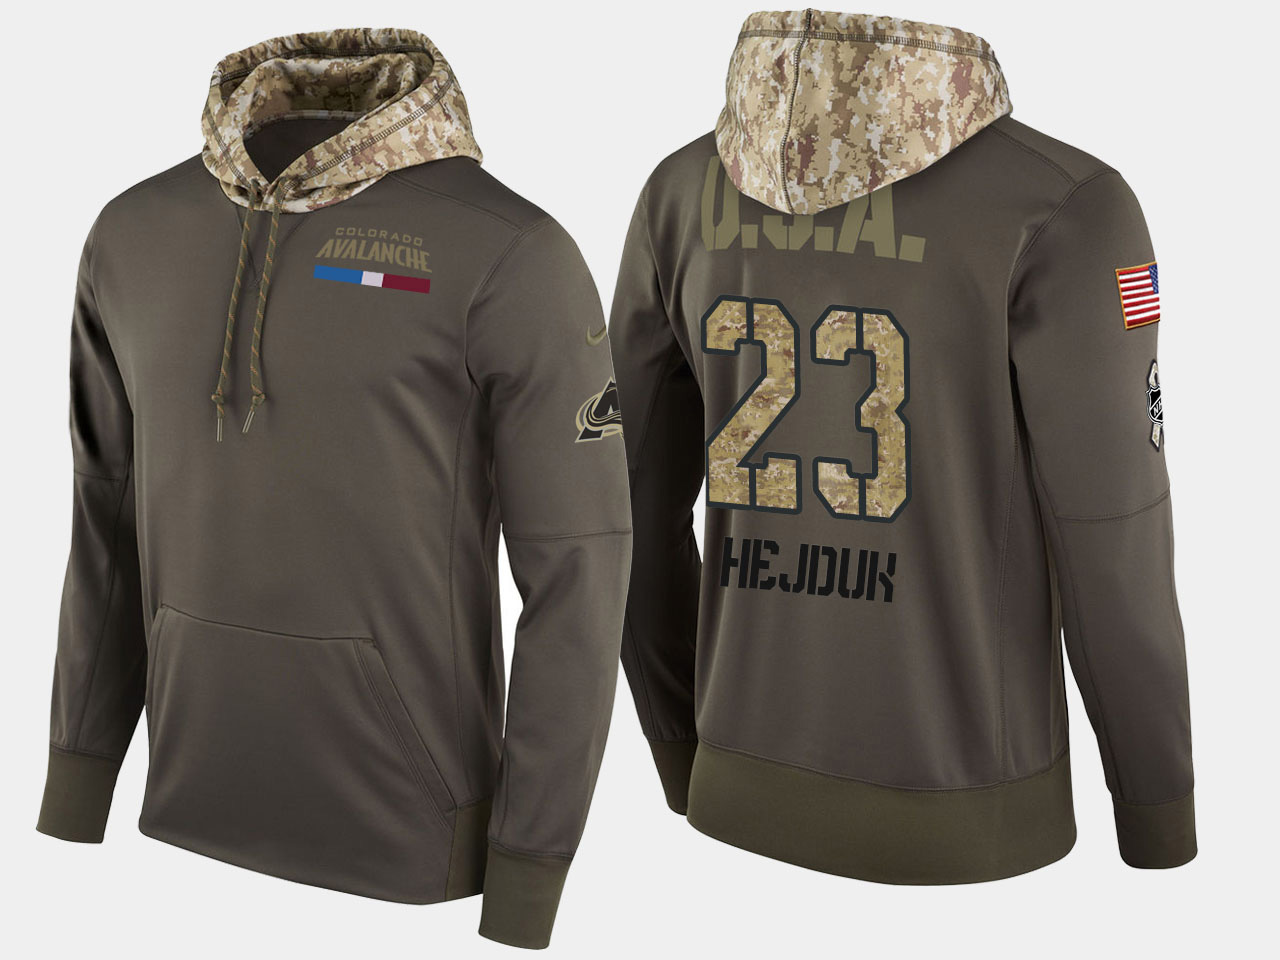 Nike Avalanche 23 Milan Bejduk Retired Olive Salute To Service Pullover Hoodie